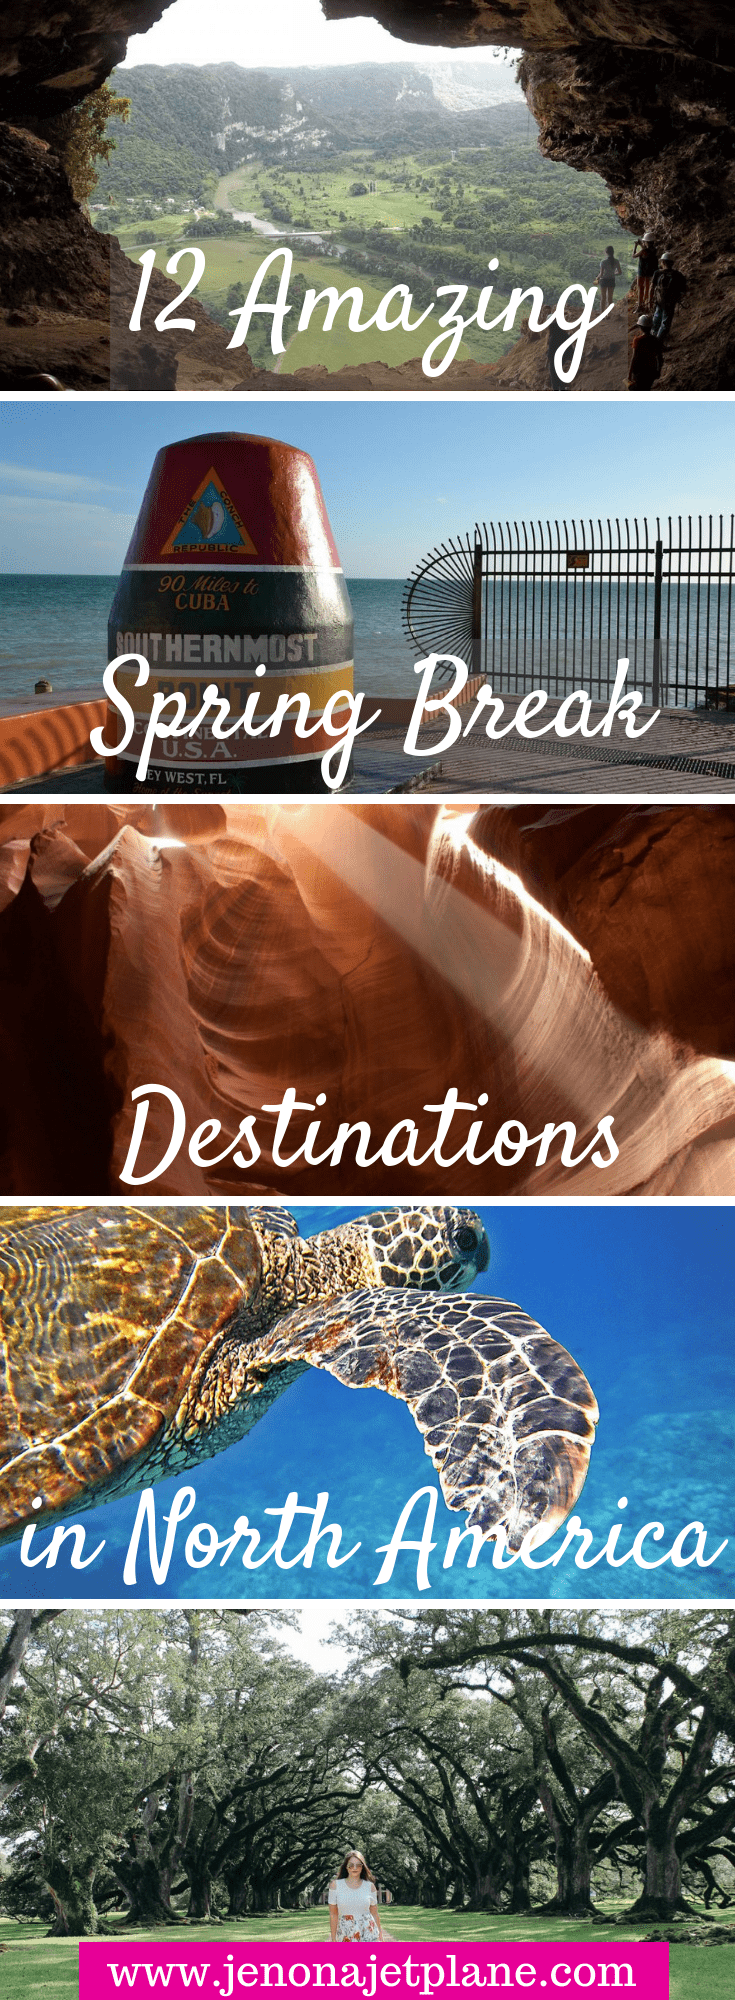 Looking for the best spring break destination in North America? From pink lakes to slot canyons, these warm and unforgettable getaways got you covered. What are you waiting for? It's time to book your next vacation. Save to your travel board for future reference. #springbreakdestinations #springbreakideas #springbreak #travelinspiration #travelunitedstates #travelamerica